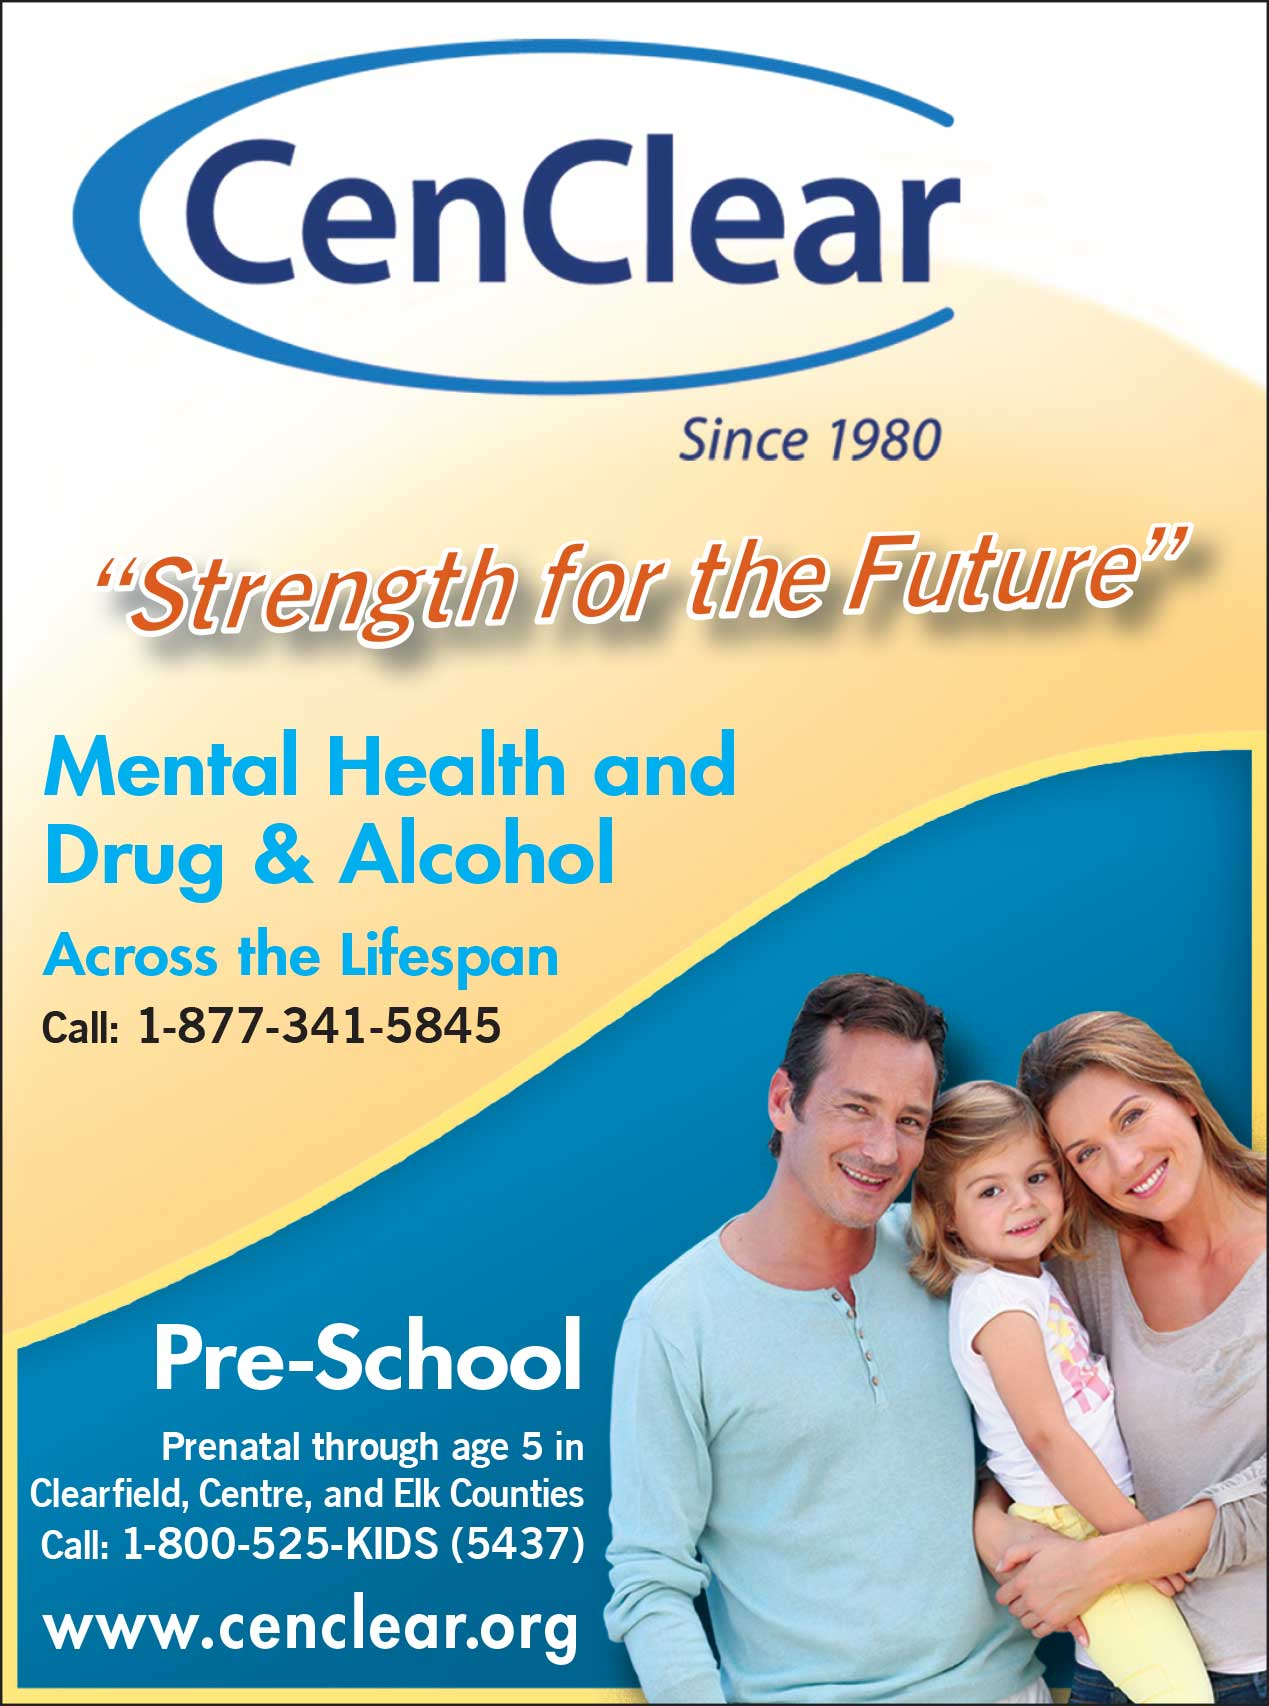 "<center>CenClear | <b><a href=""https://www.cenclear.org"" target=""_blank"" rel=""noopener noreferrer"">CLICK HERE to view the website</a></b></center>"